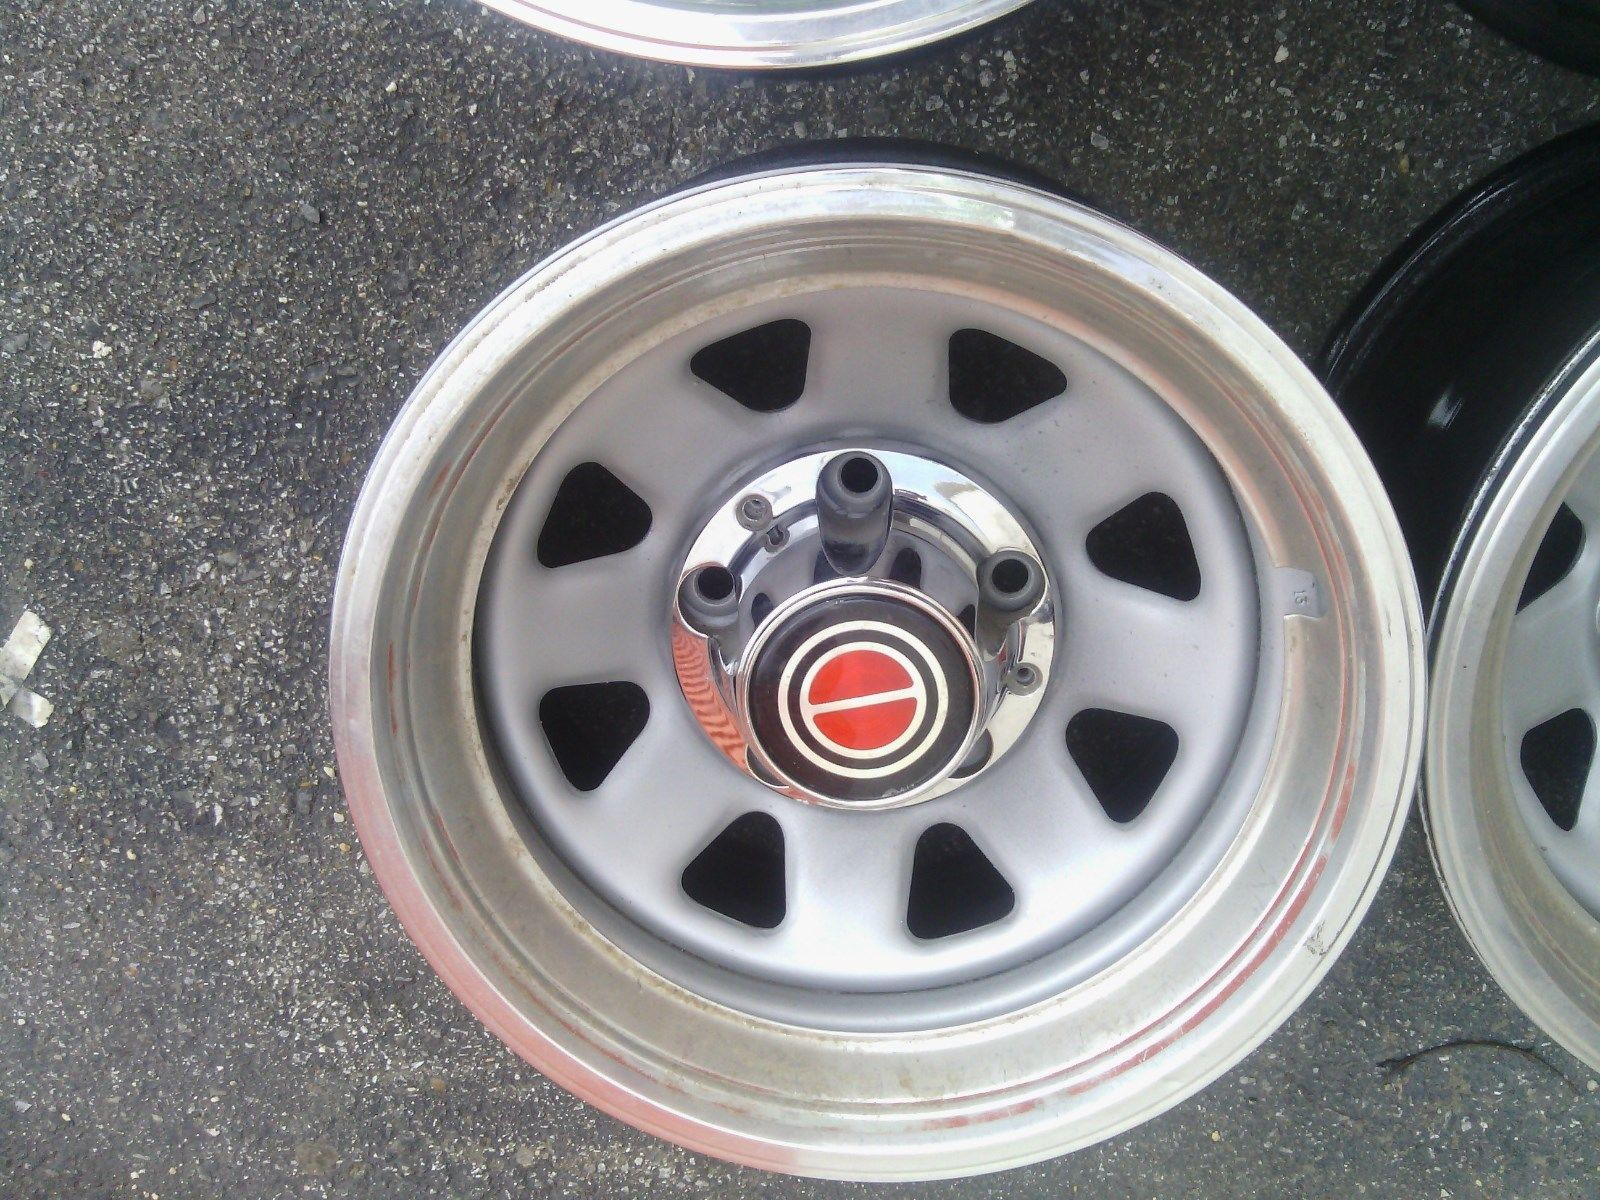 Category wheels tires price 250 private or vendor listing private listing location state ca item condition used